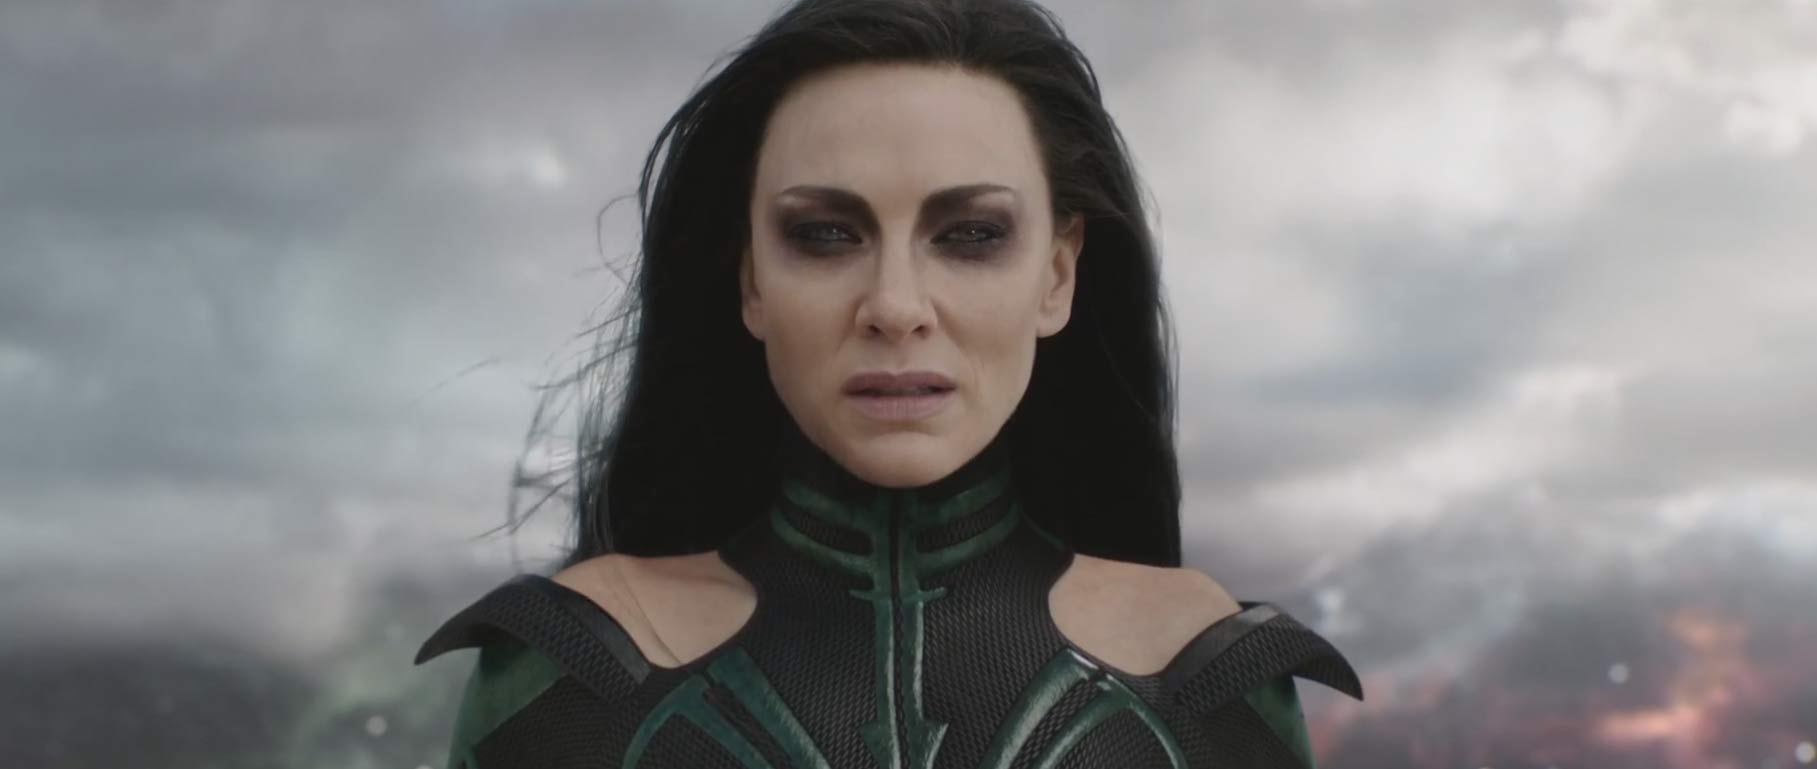 Thor: Ragnarok Trailer Screen Shot 1